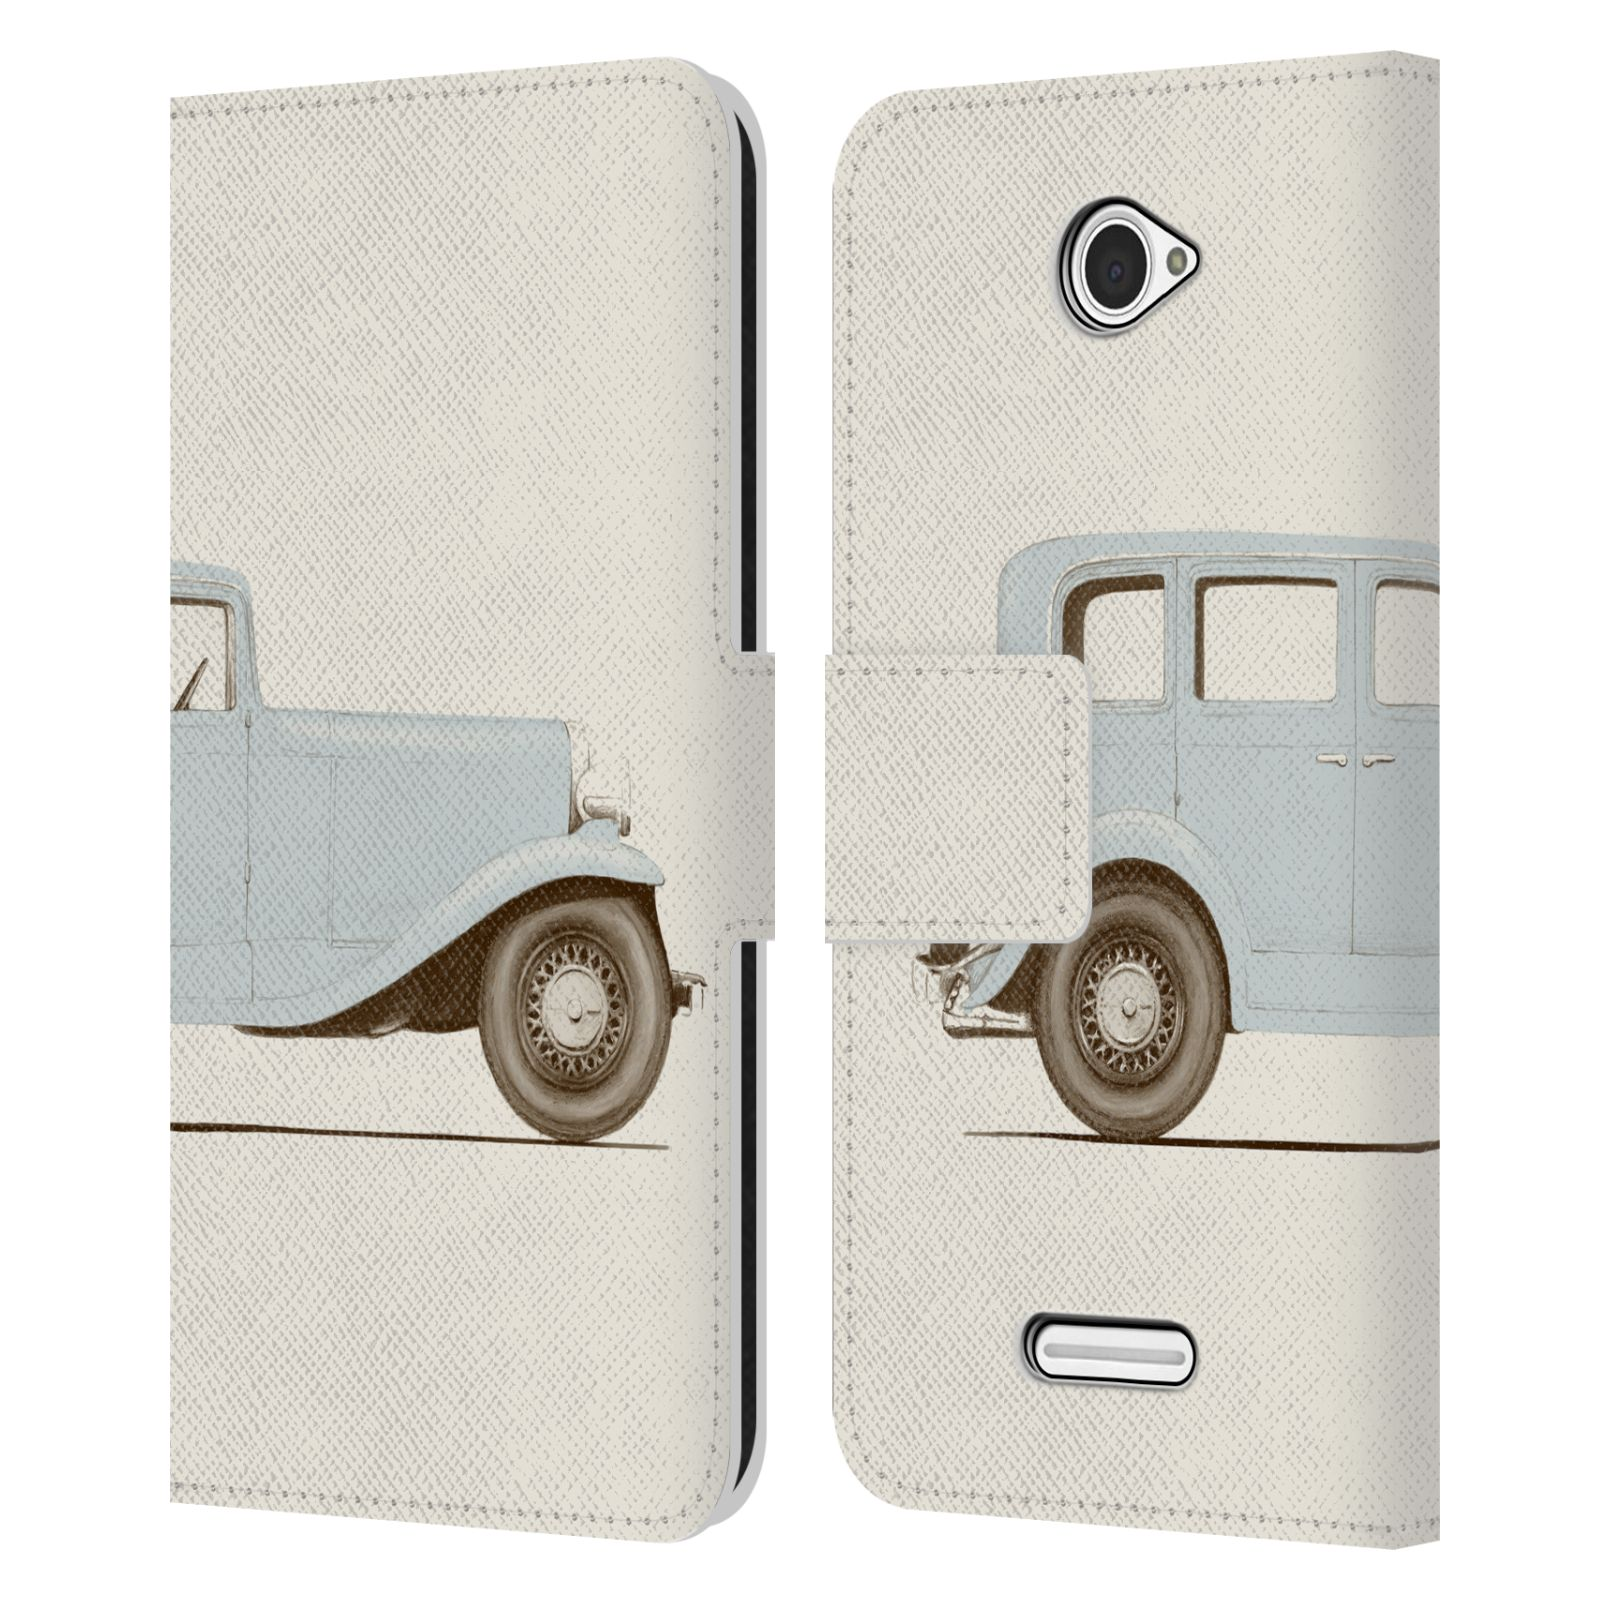 OFFICIAL-FLORENT-BODART-WHEELS-LEATHER-BOOK-WALLET-CASE-COVER-FOR-SONY-PHONES-2